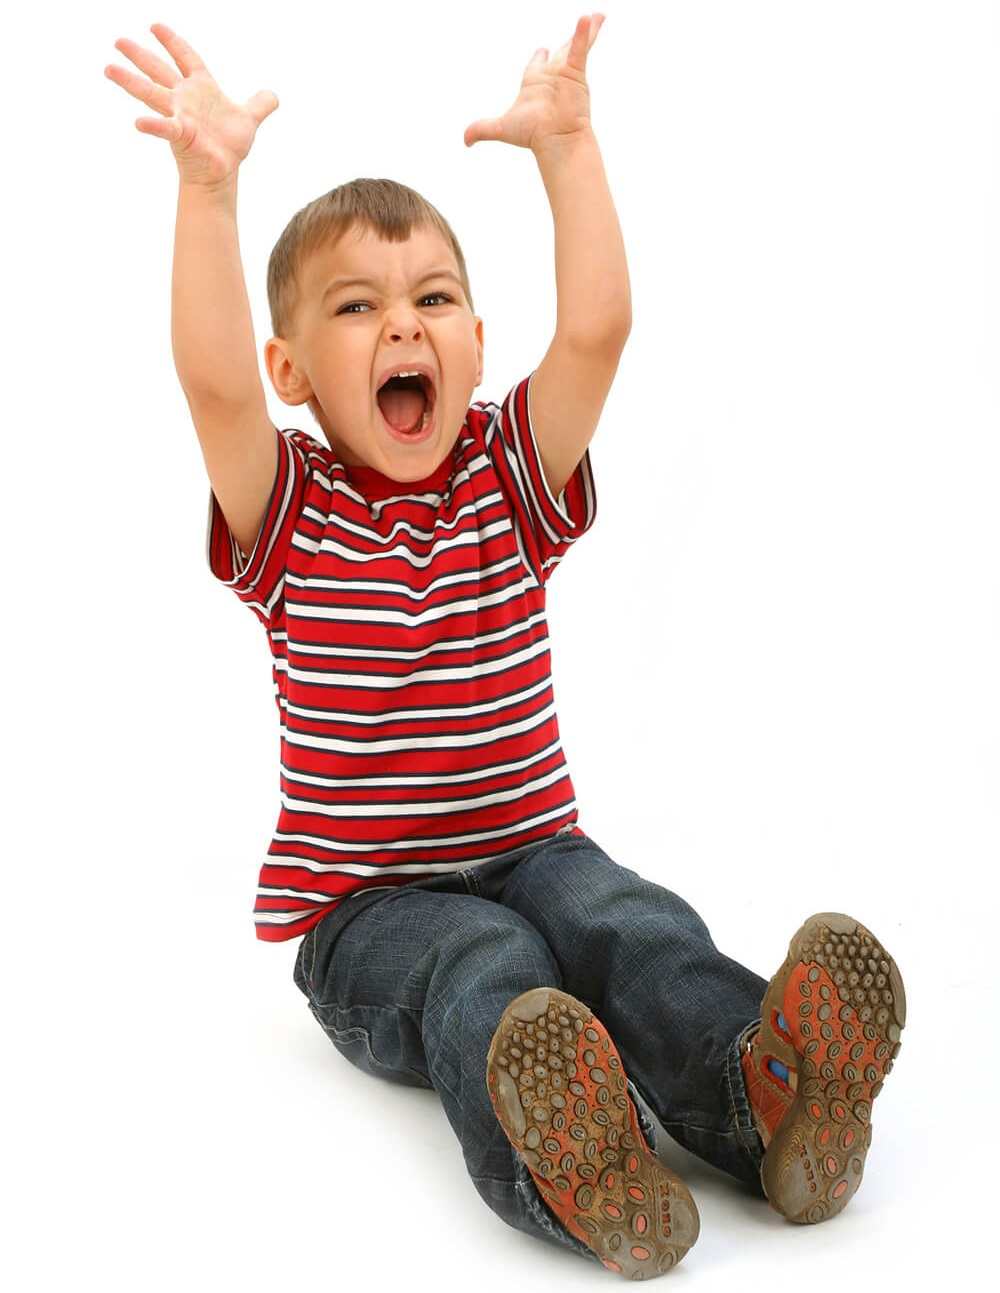 Upset boy with ADHD (Attention Deficit Hyperactivity Disorder) yelling with his arms in the air